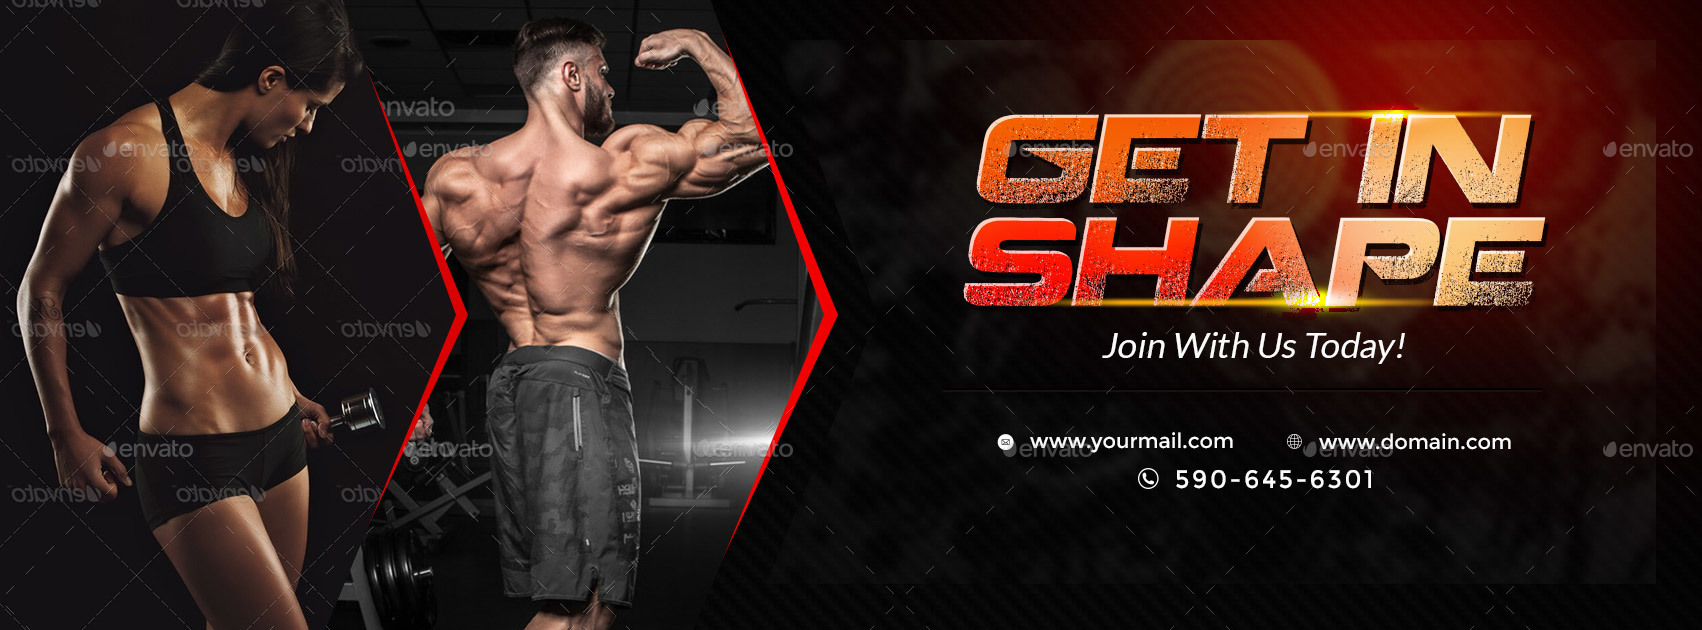 Health & Fitness Facebook Covers - 2 Designs by doto ...